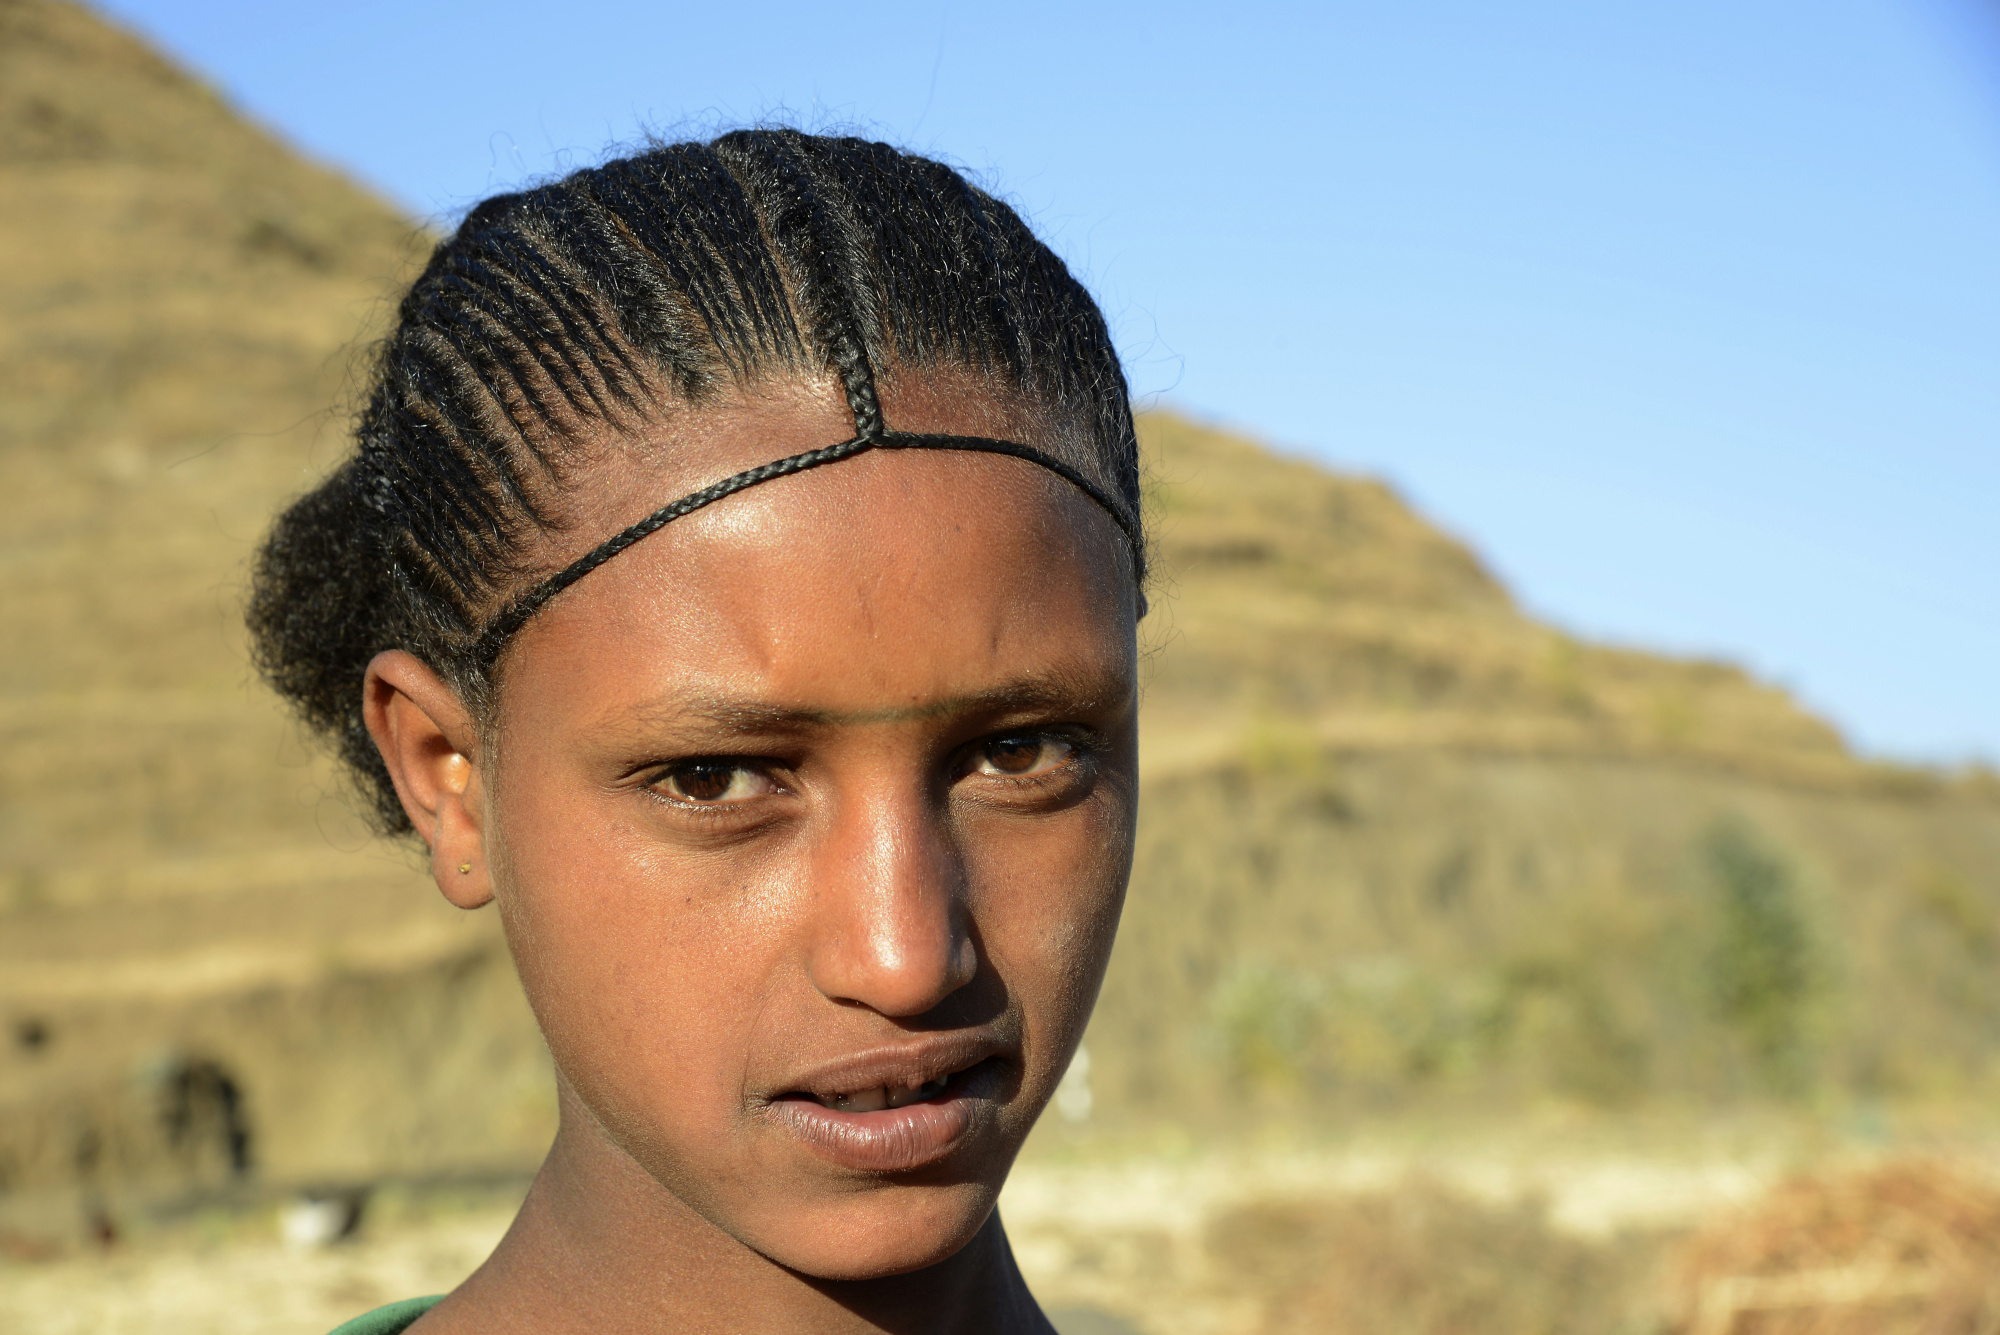 Tigray Hairstyle 2 Lalibela Pictures Ethiopia In Global Geography